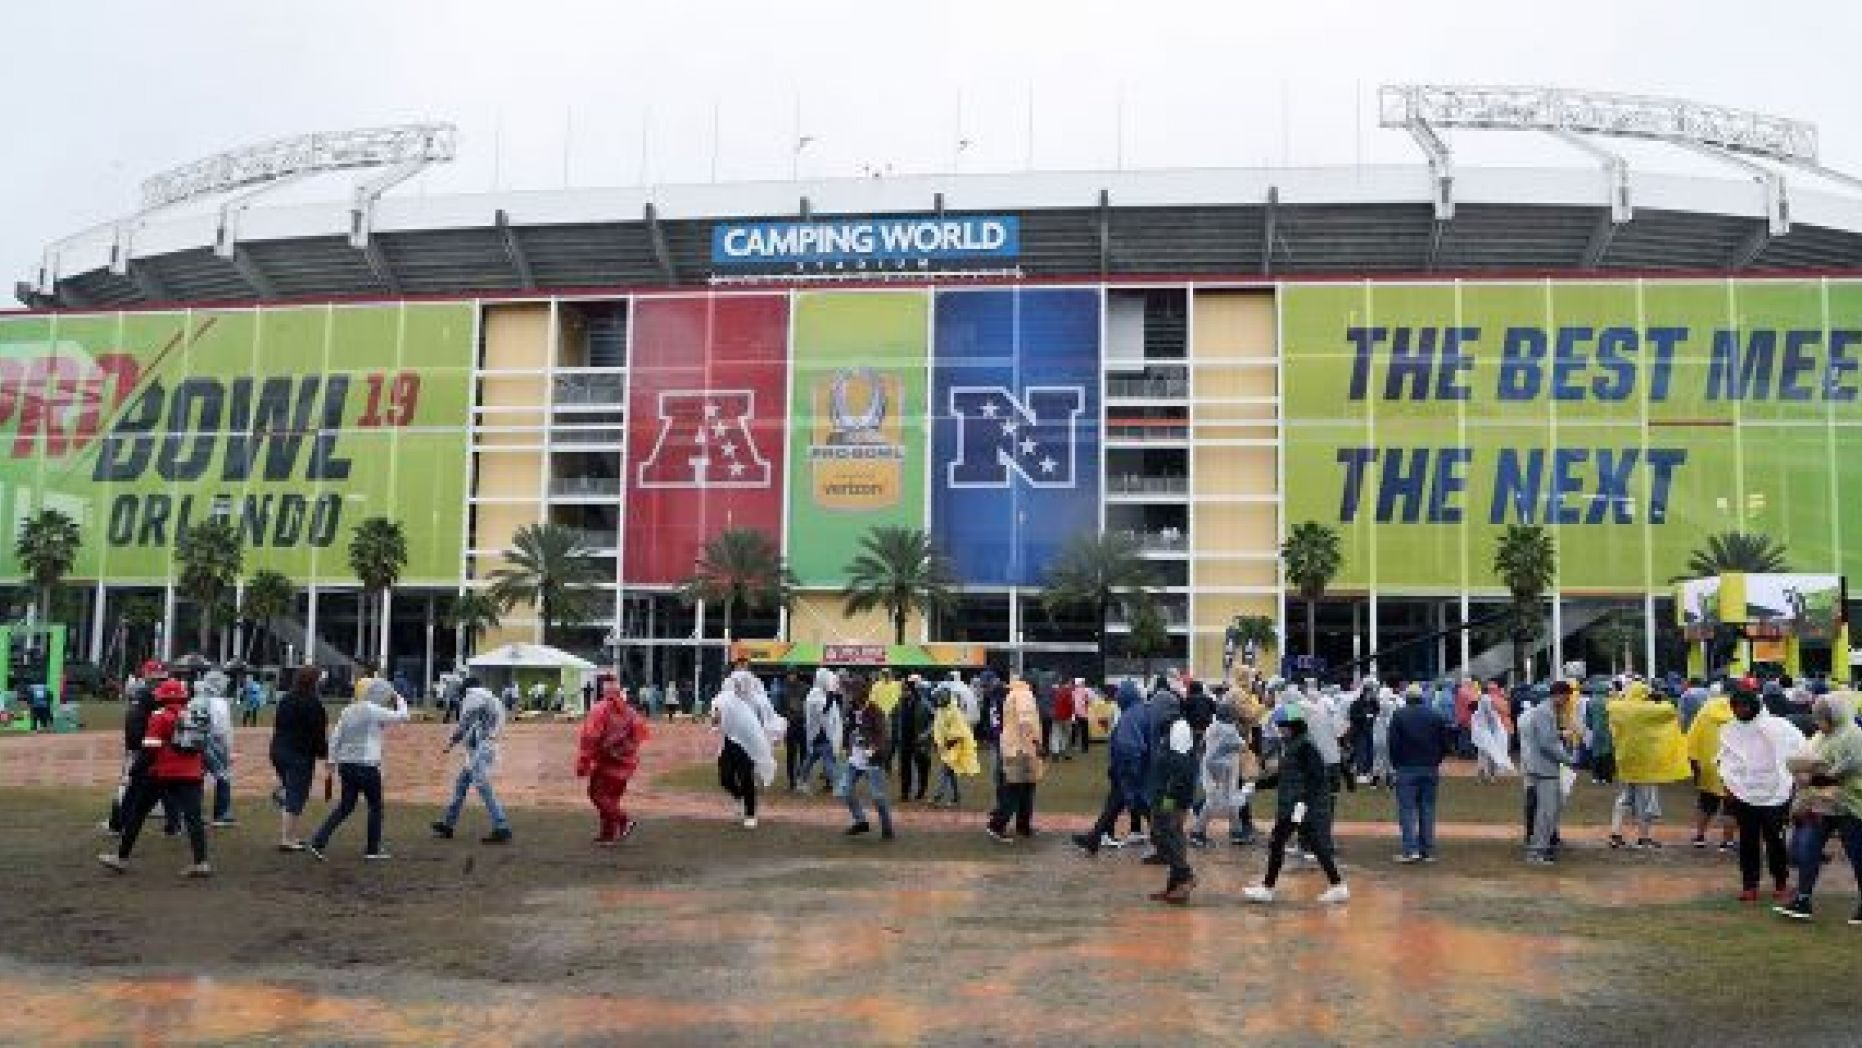 FILE - This Jan. 27, 2019, file photo shows a general view exterior of Camping World Stadium before the NFL Pro Bowl football game in Orlando, Fla. The Pro Bowl will return to Orlando for the fourth straight year and be held one week before the Super Bowl. The NFL